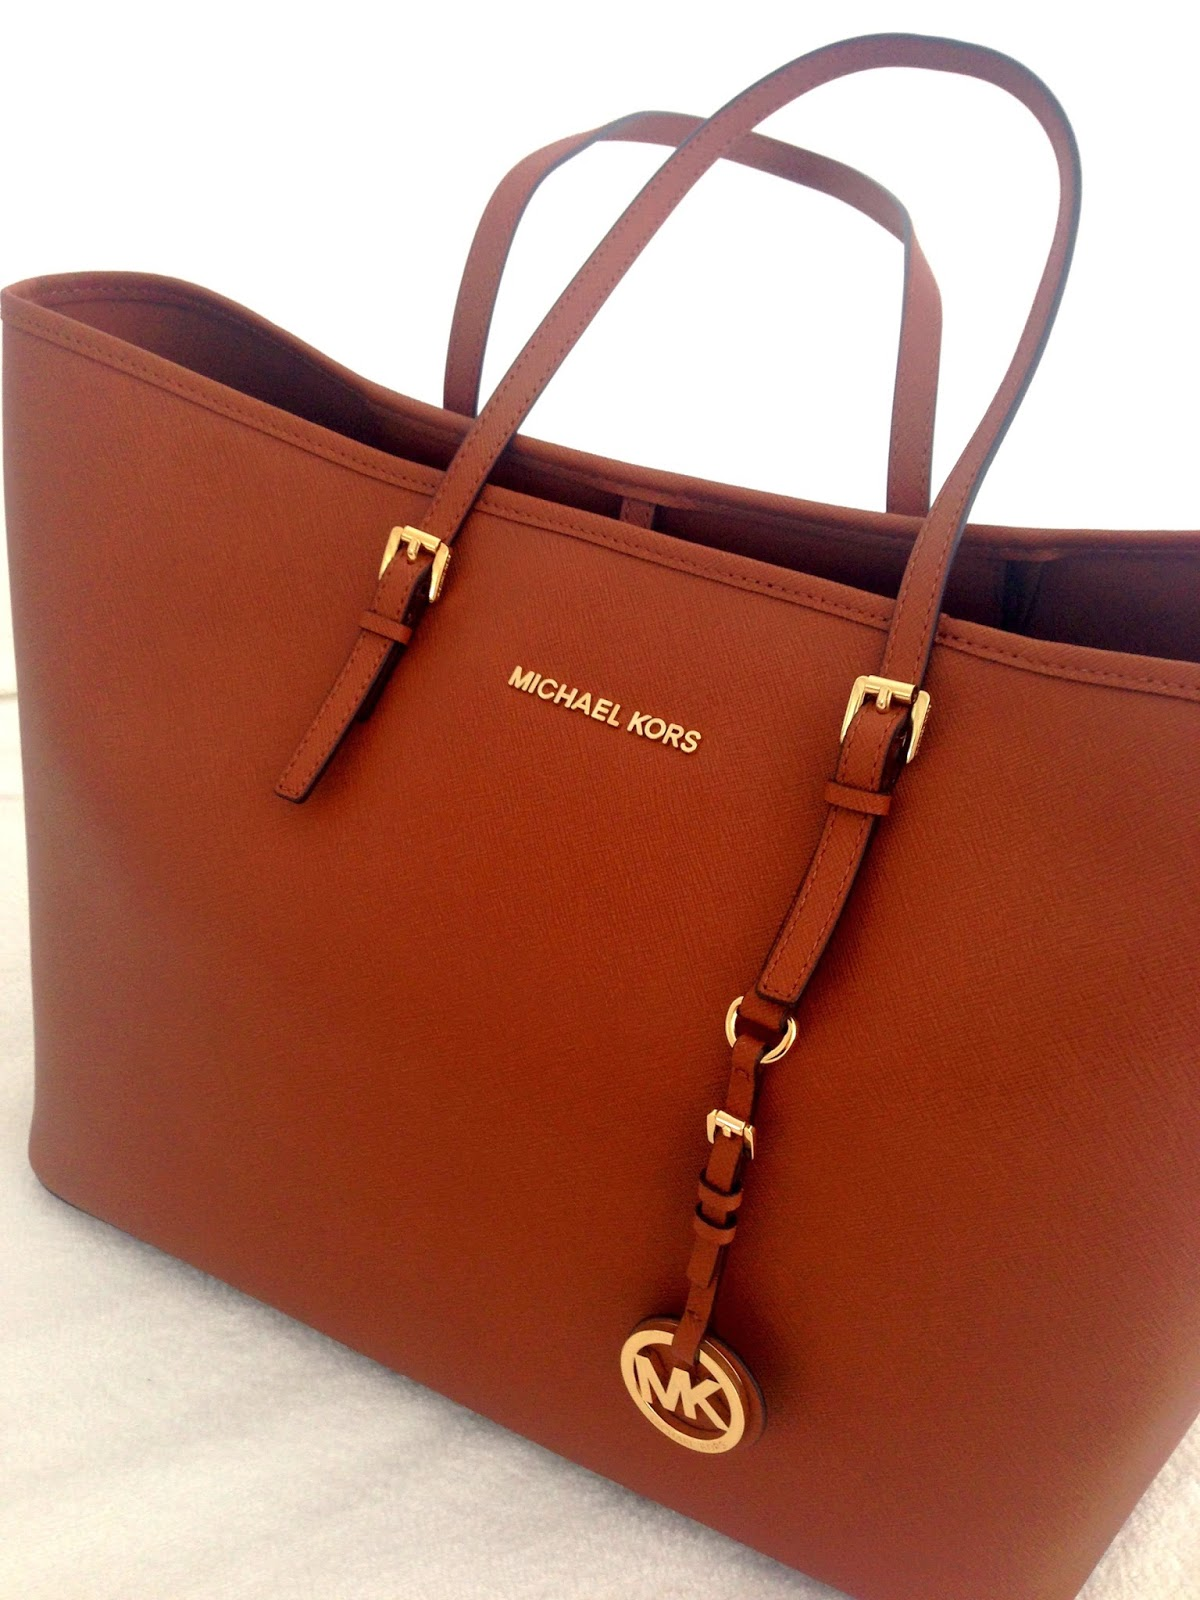 Zalando Kors Laukut : The little things michael kors jet set travel tote